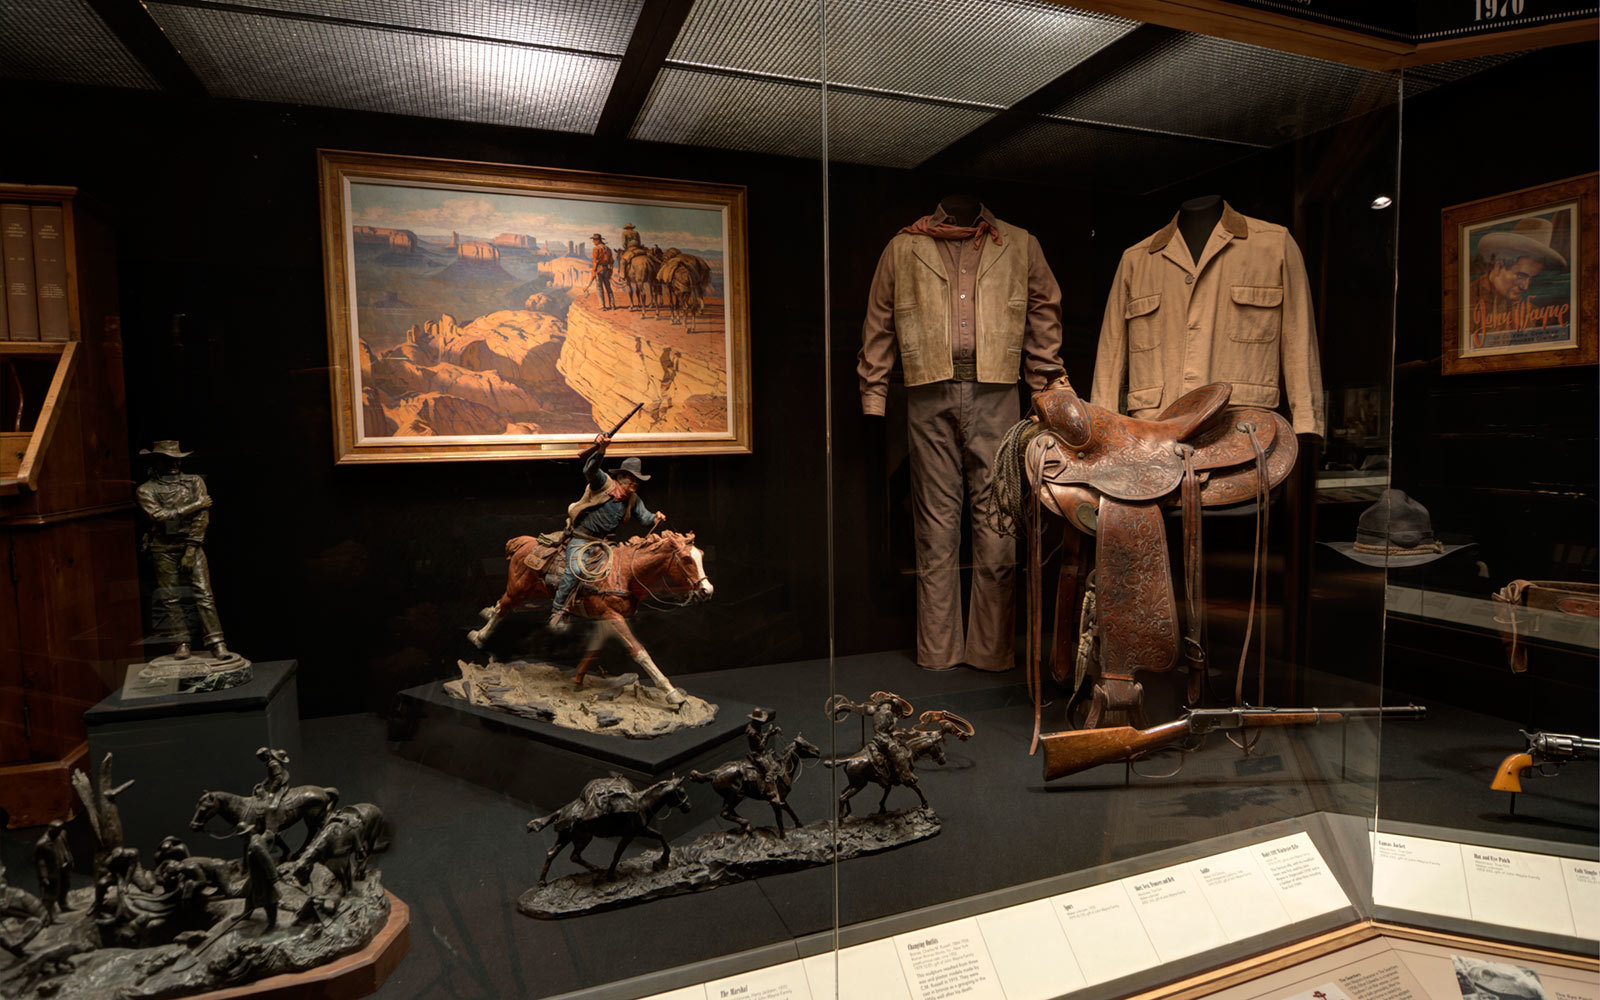 Walk Through the National Cowboy & Western Heritage Museum: Oklahoma City, OK